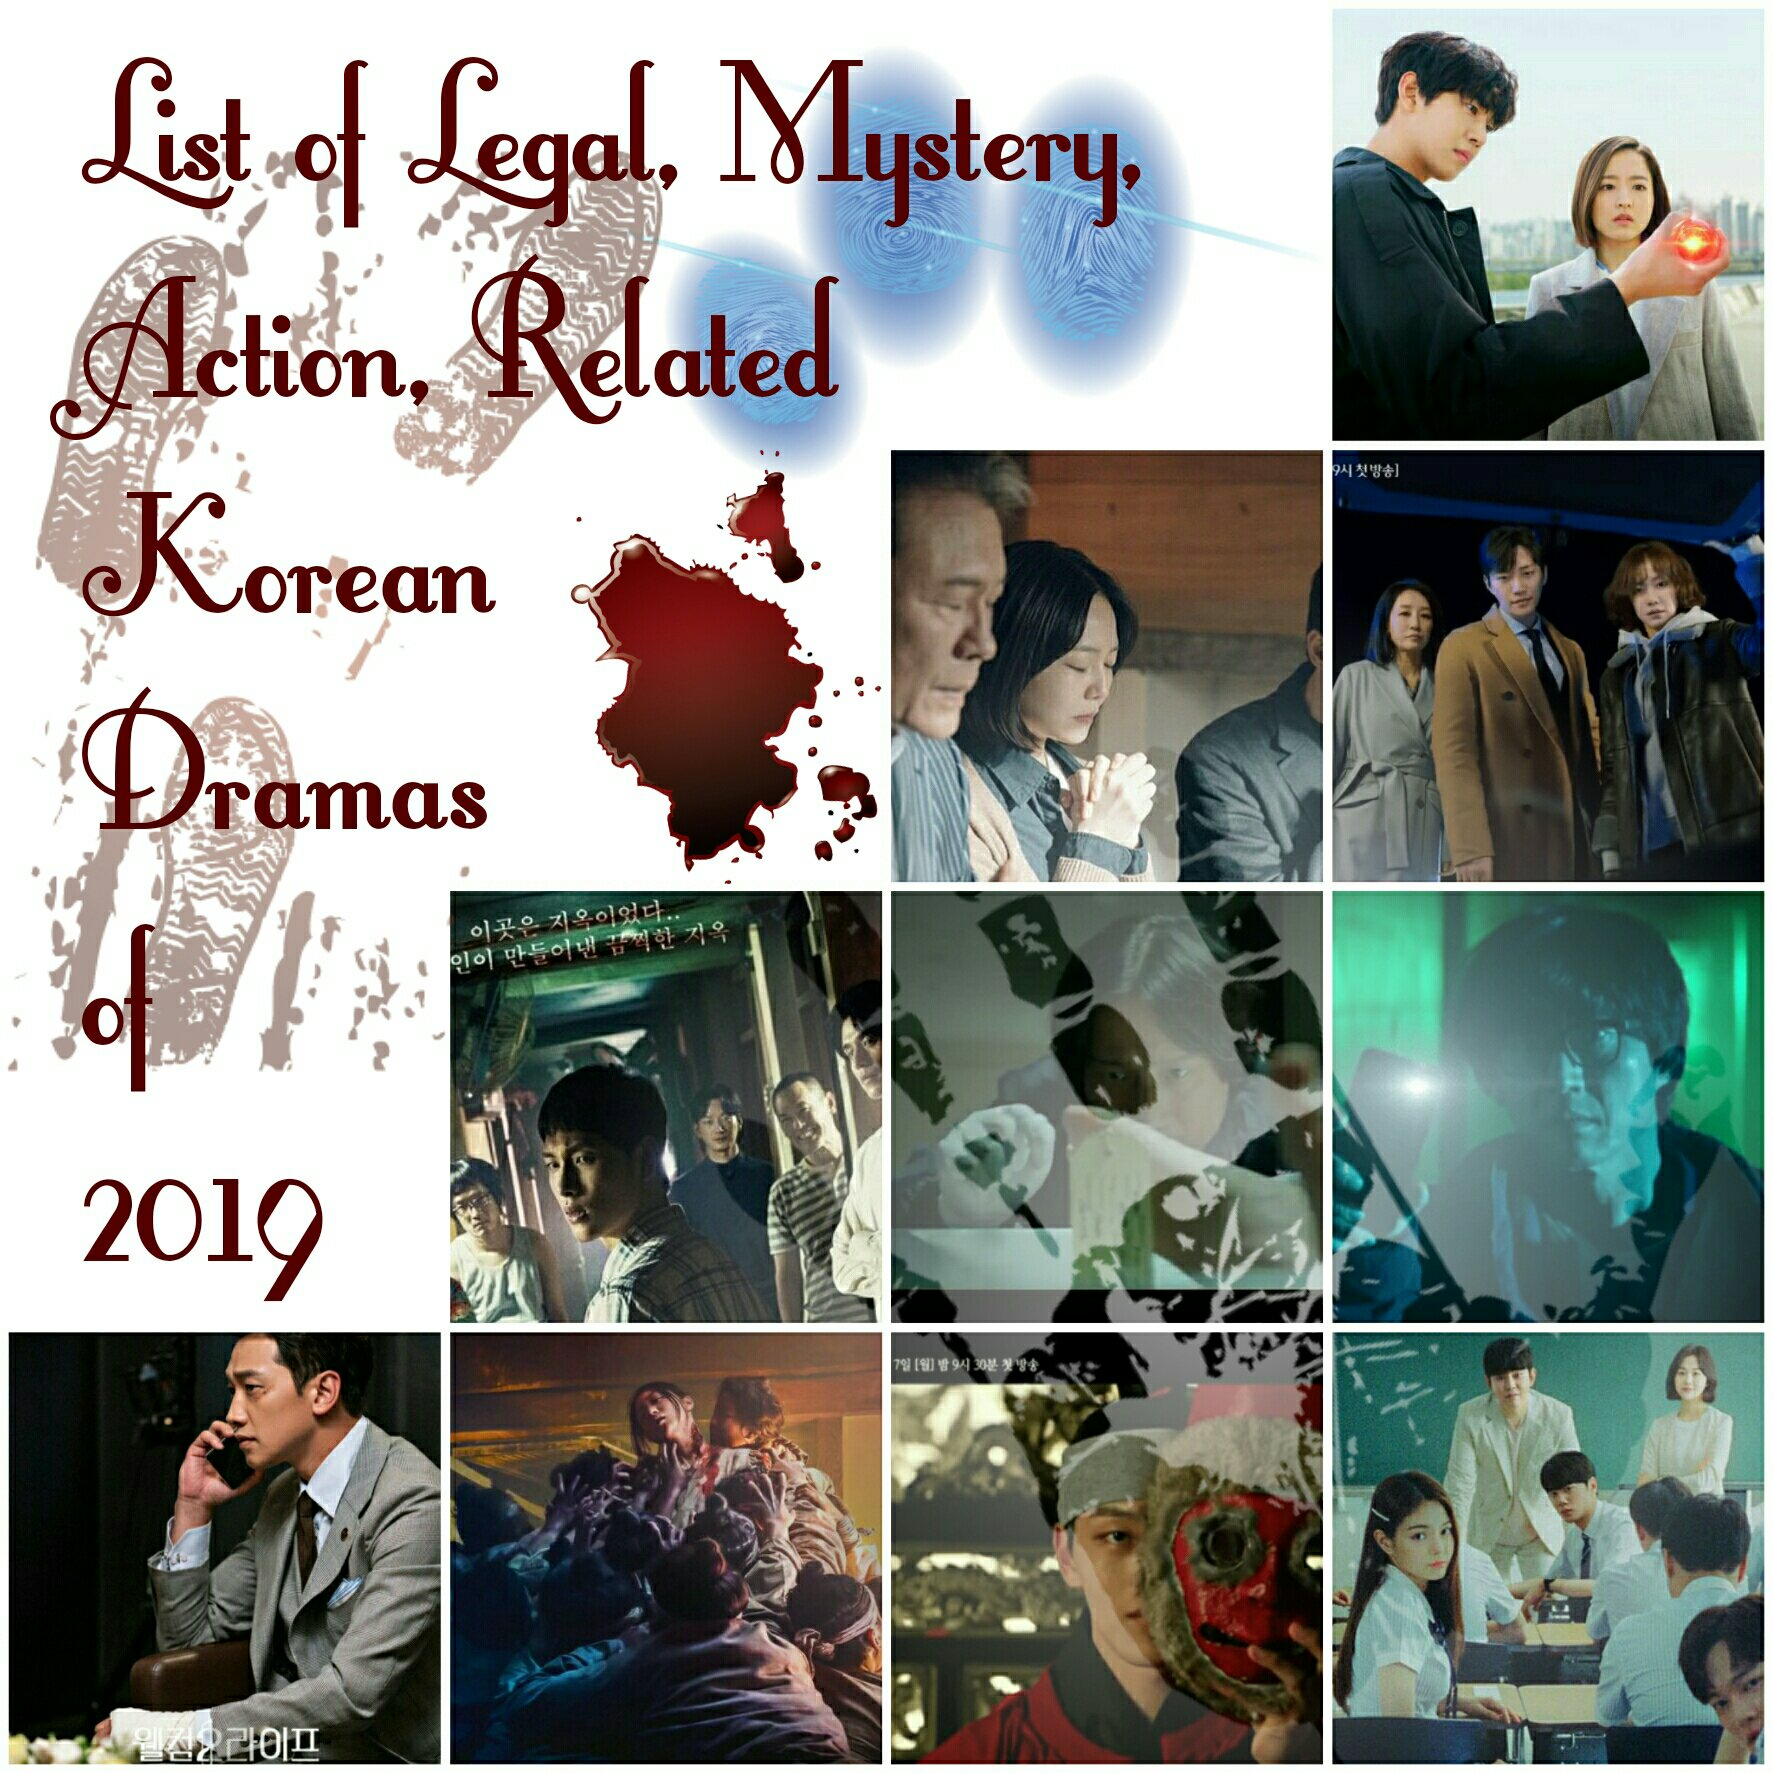 list of legal, crime, mystery, action related korean dramas of 2019